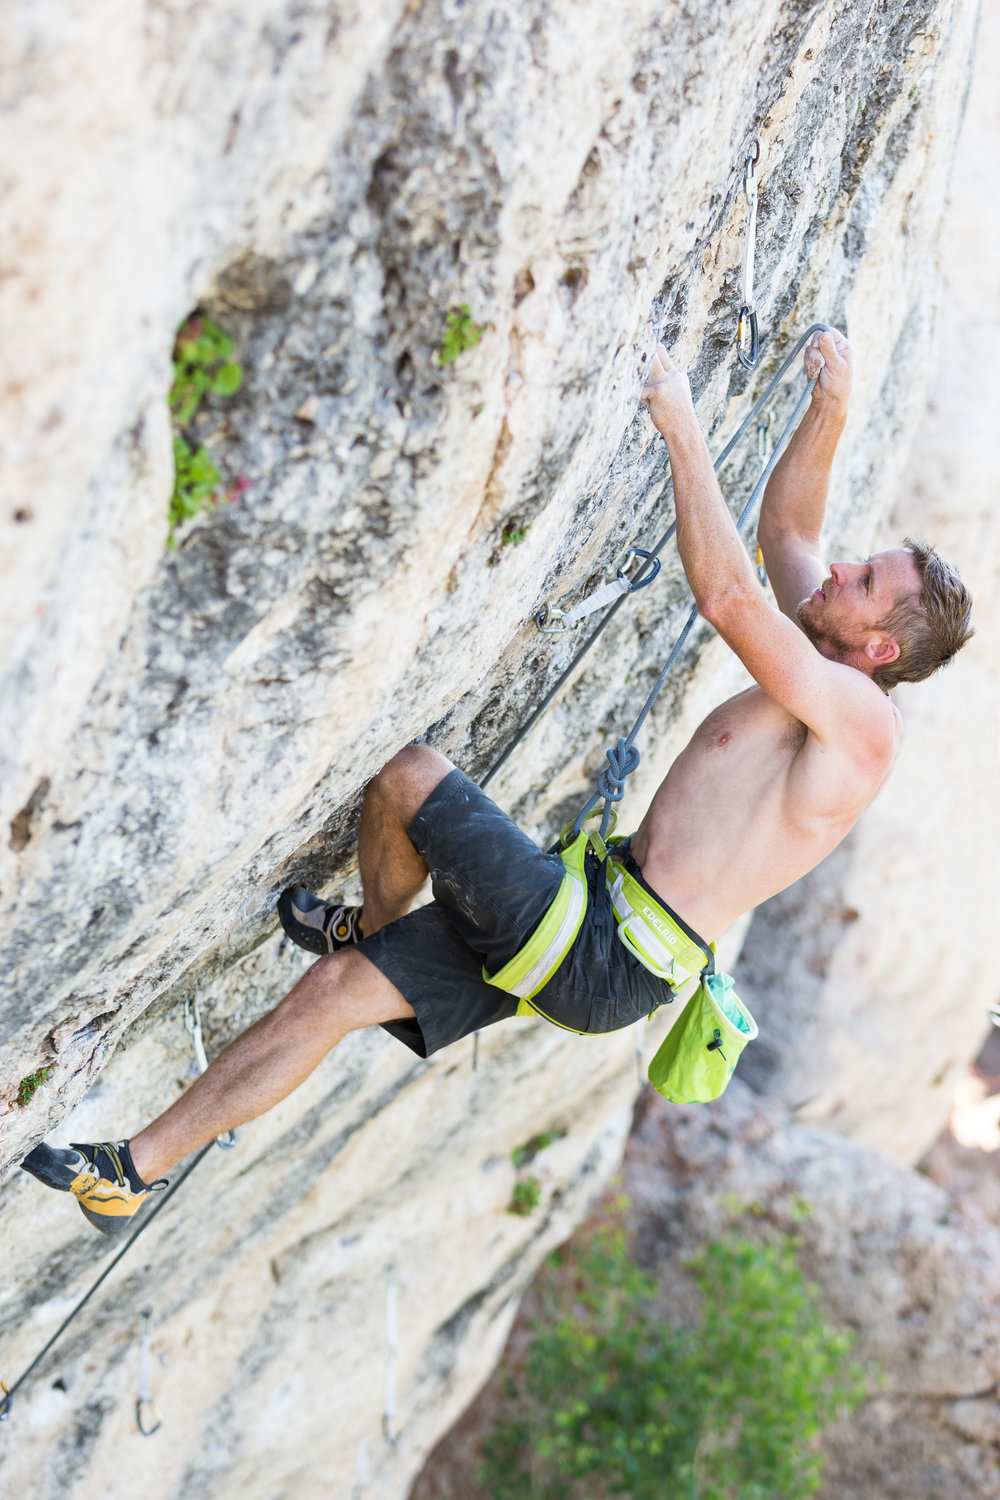 Tommy Caldwell cruises up Bobcat Logic (5.12C) in Wild Iris, Wyoming.